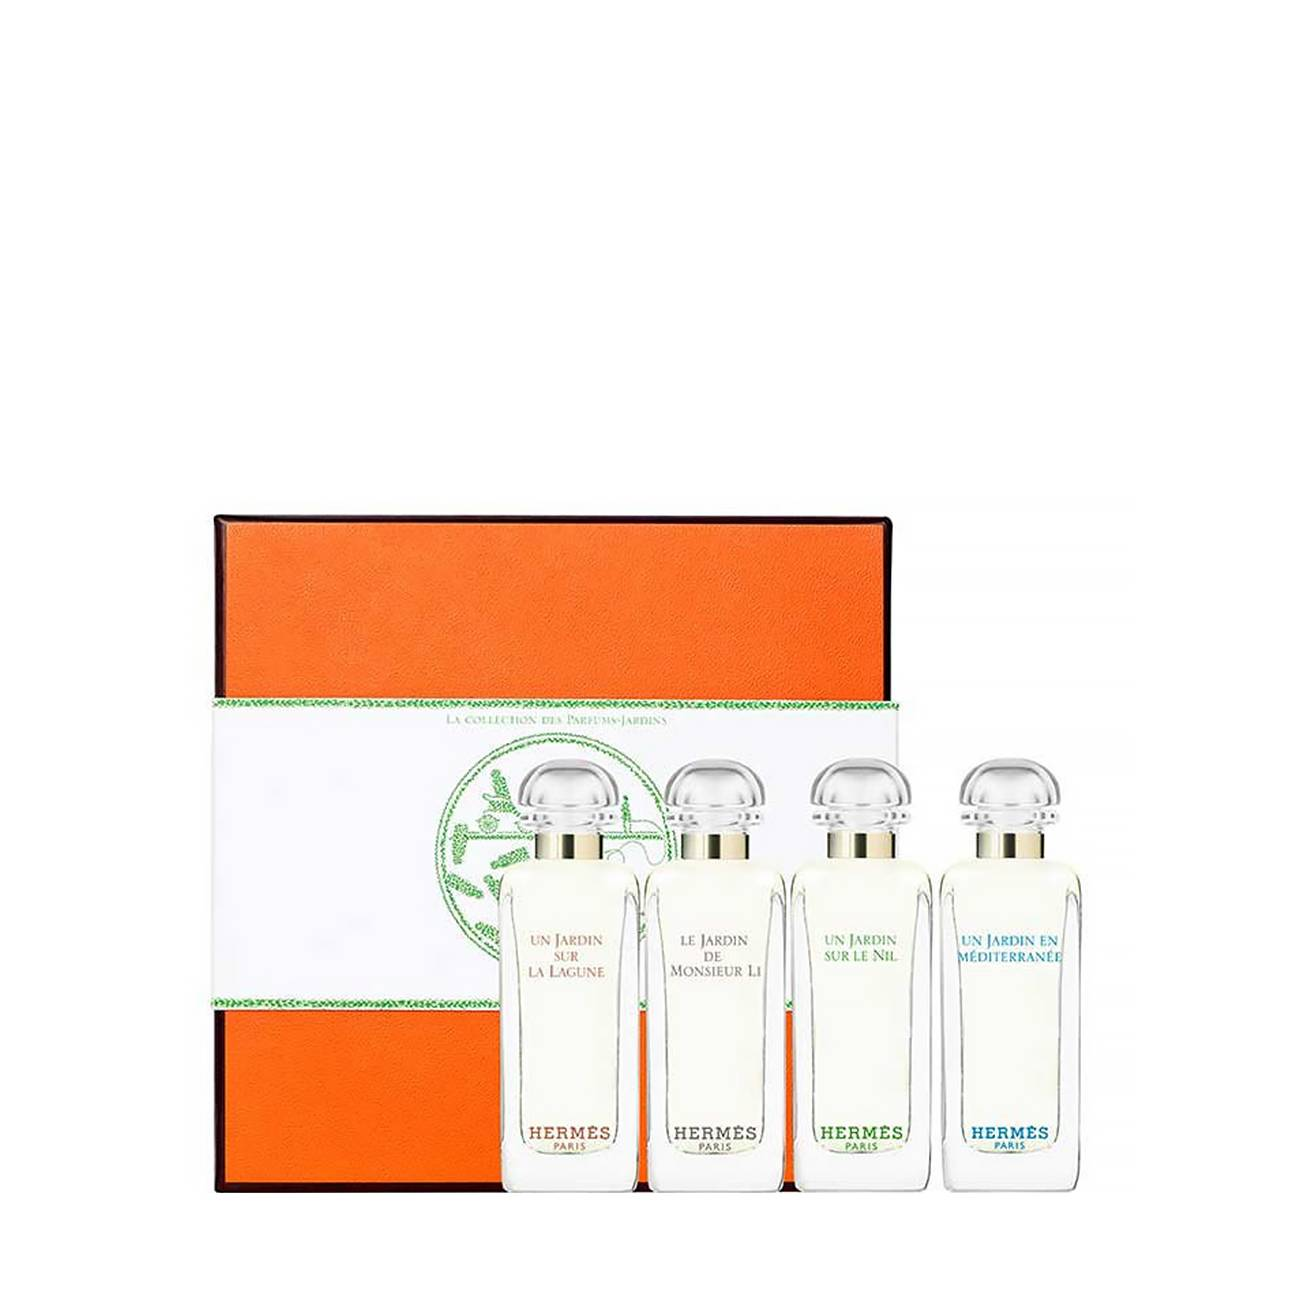 JARDIN SET 30ml imagine